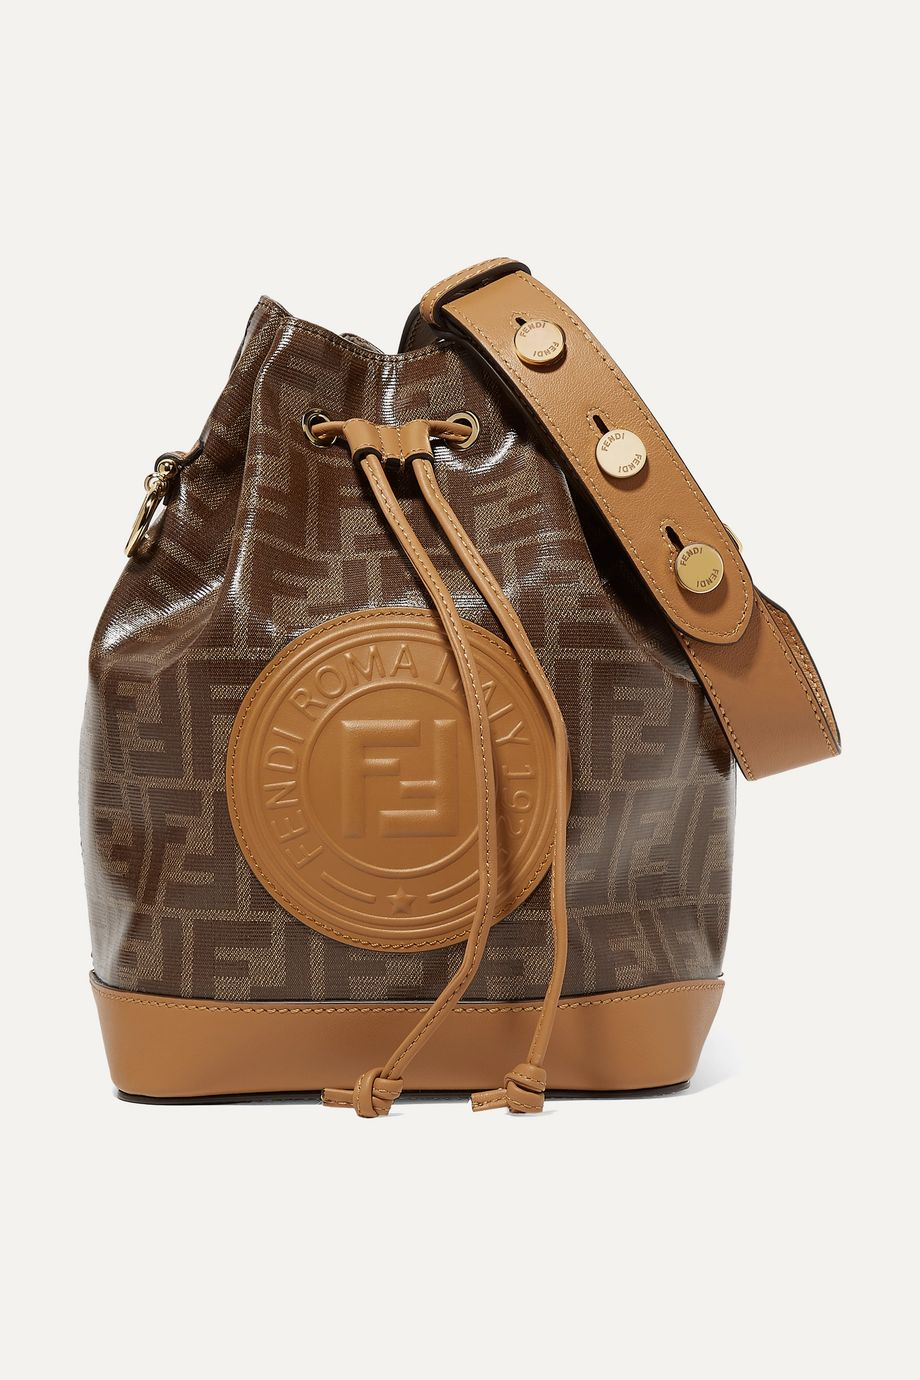 Fendi Mon Trésor large printed coated-canvas and leather bucket bag